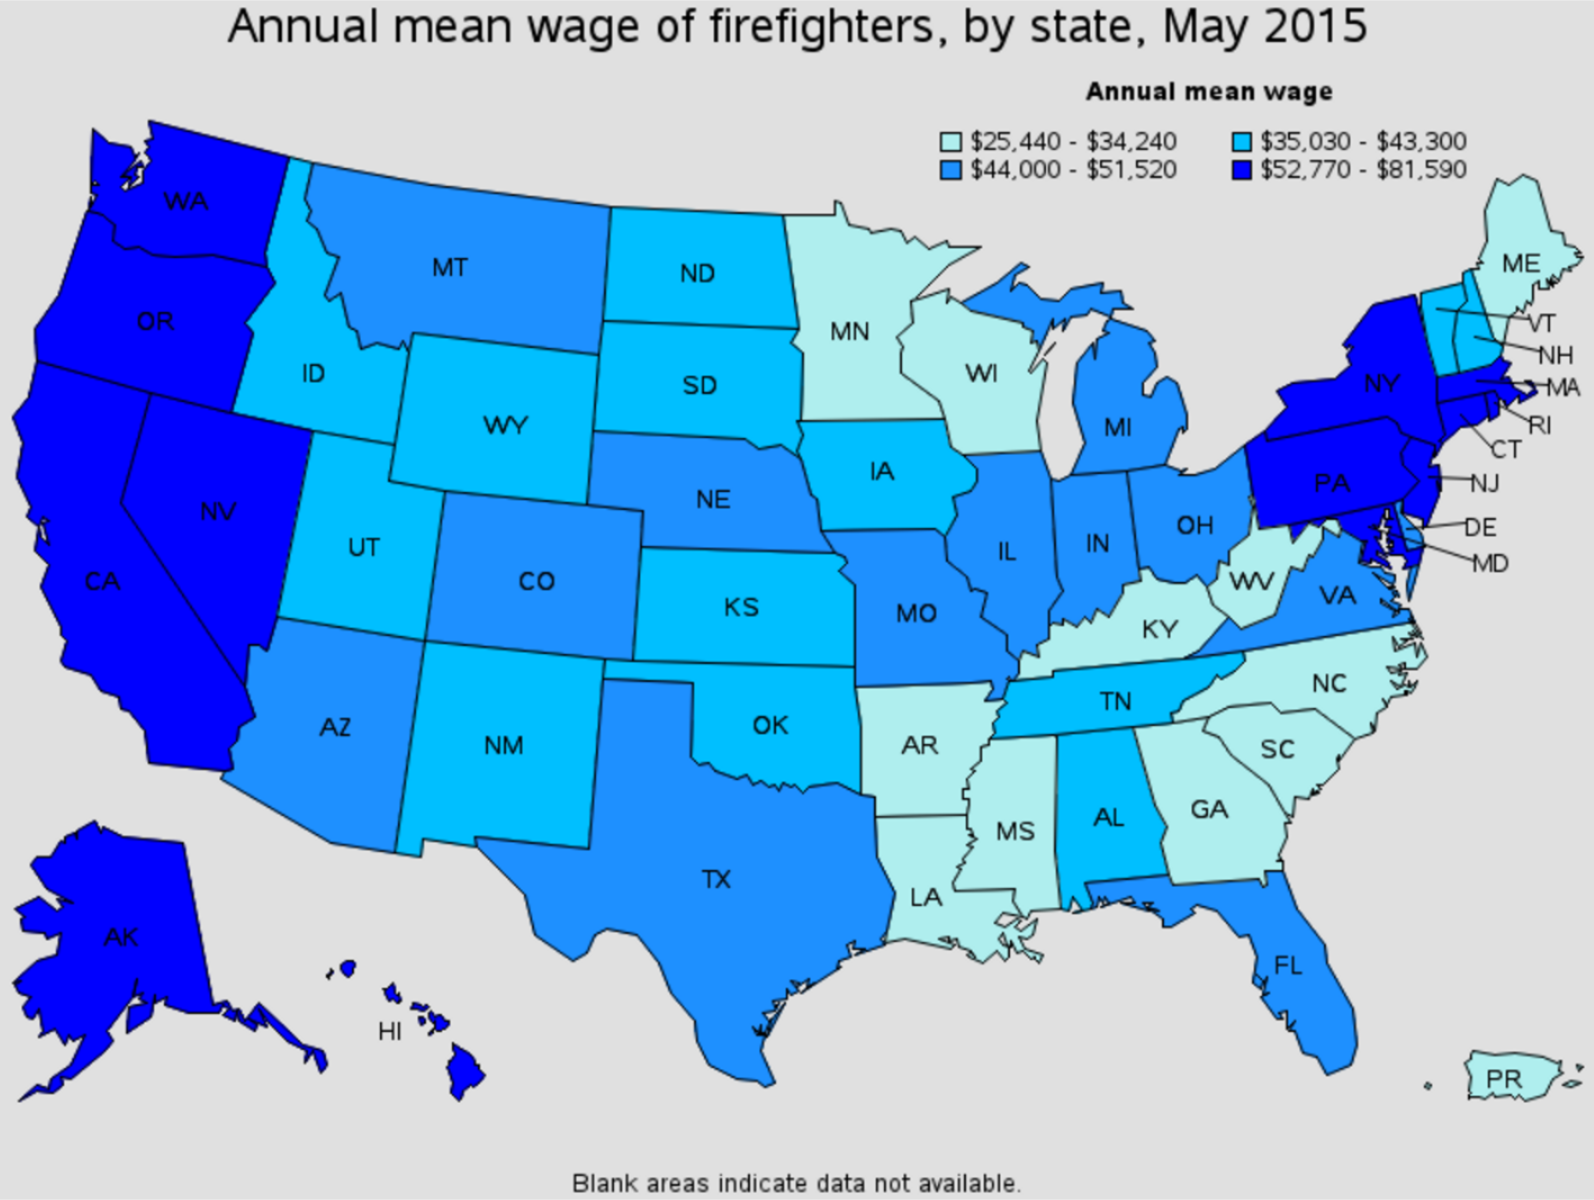 firefighter average salary by state Kittanning Pennsylvania